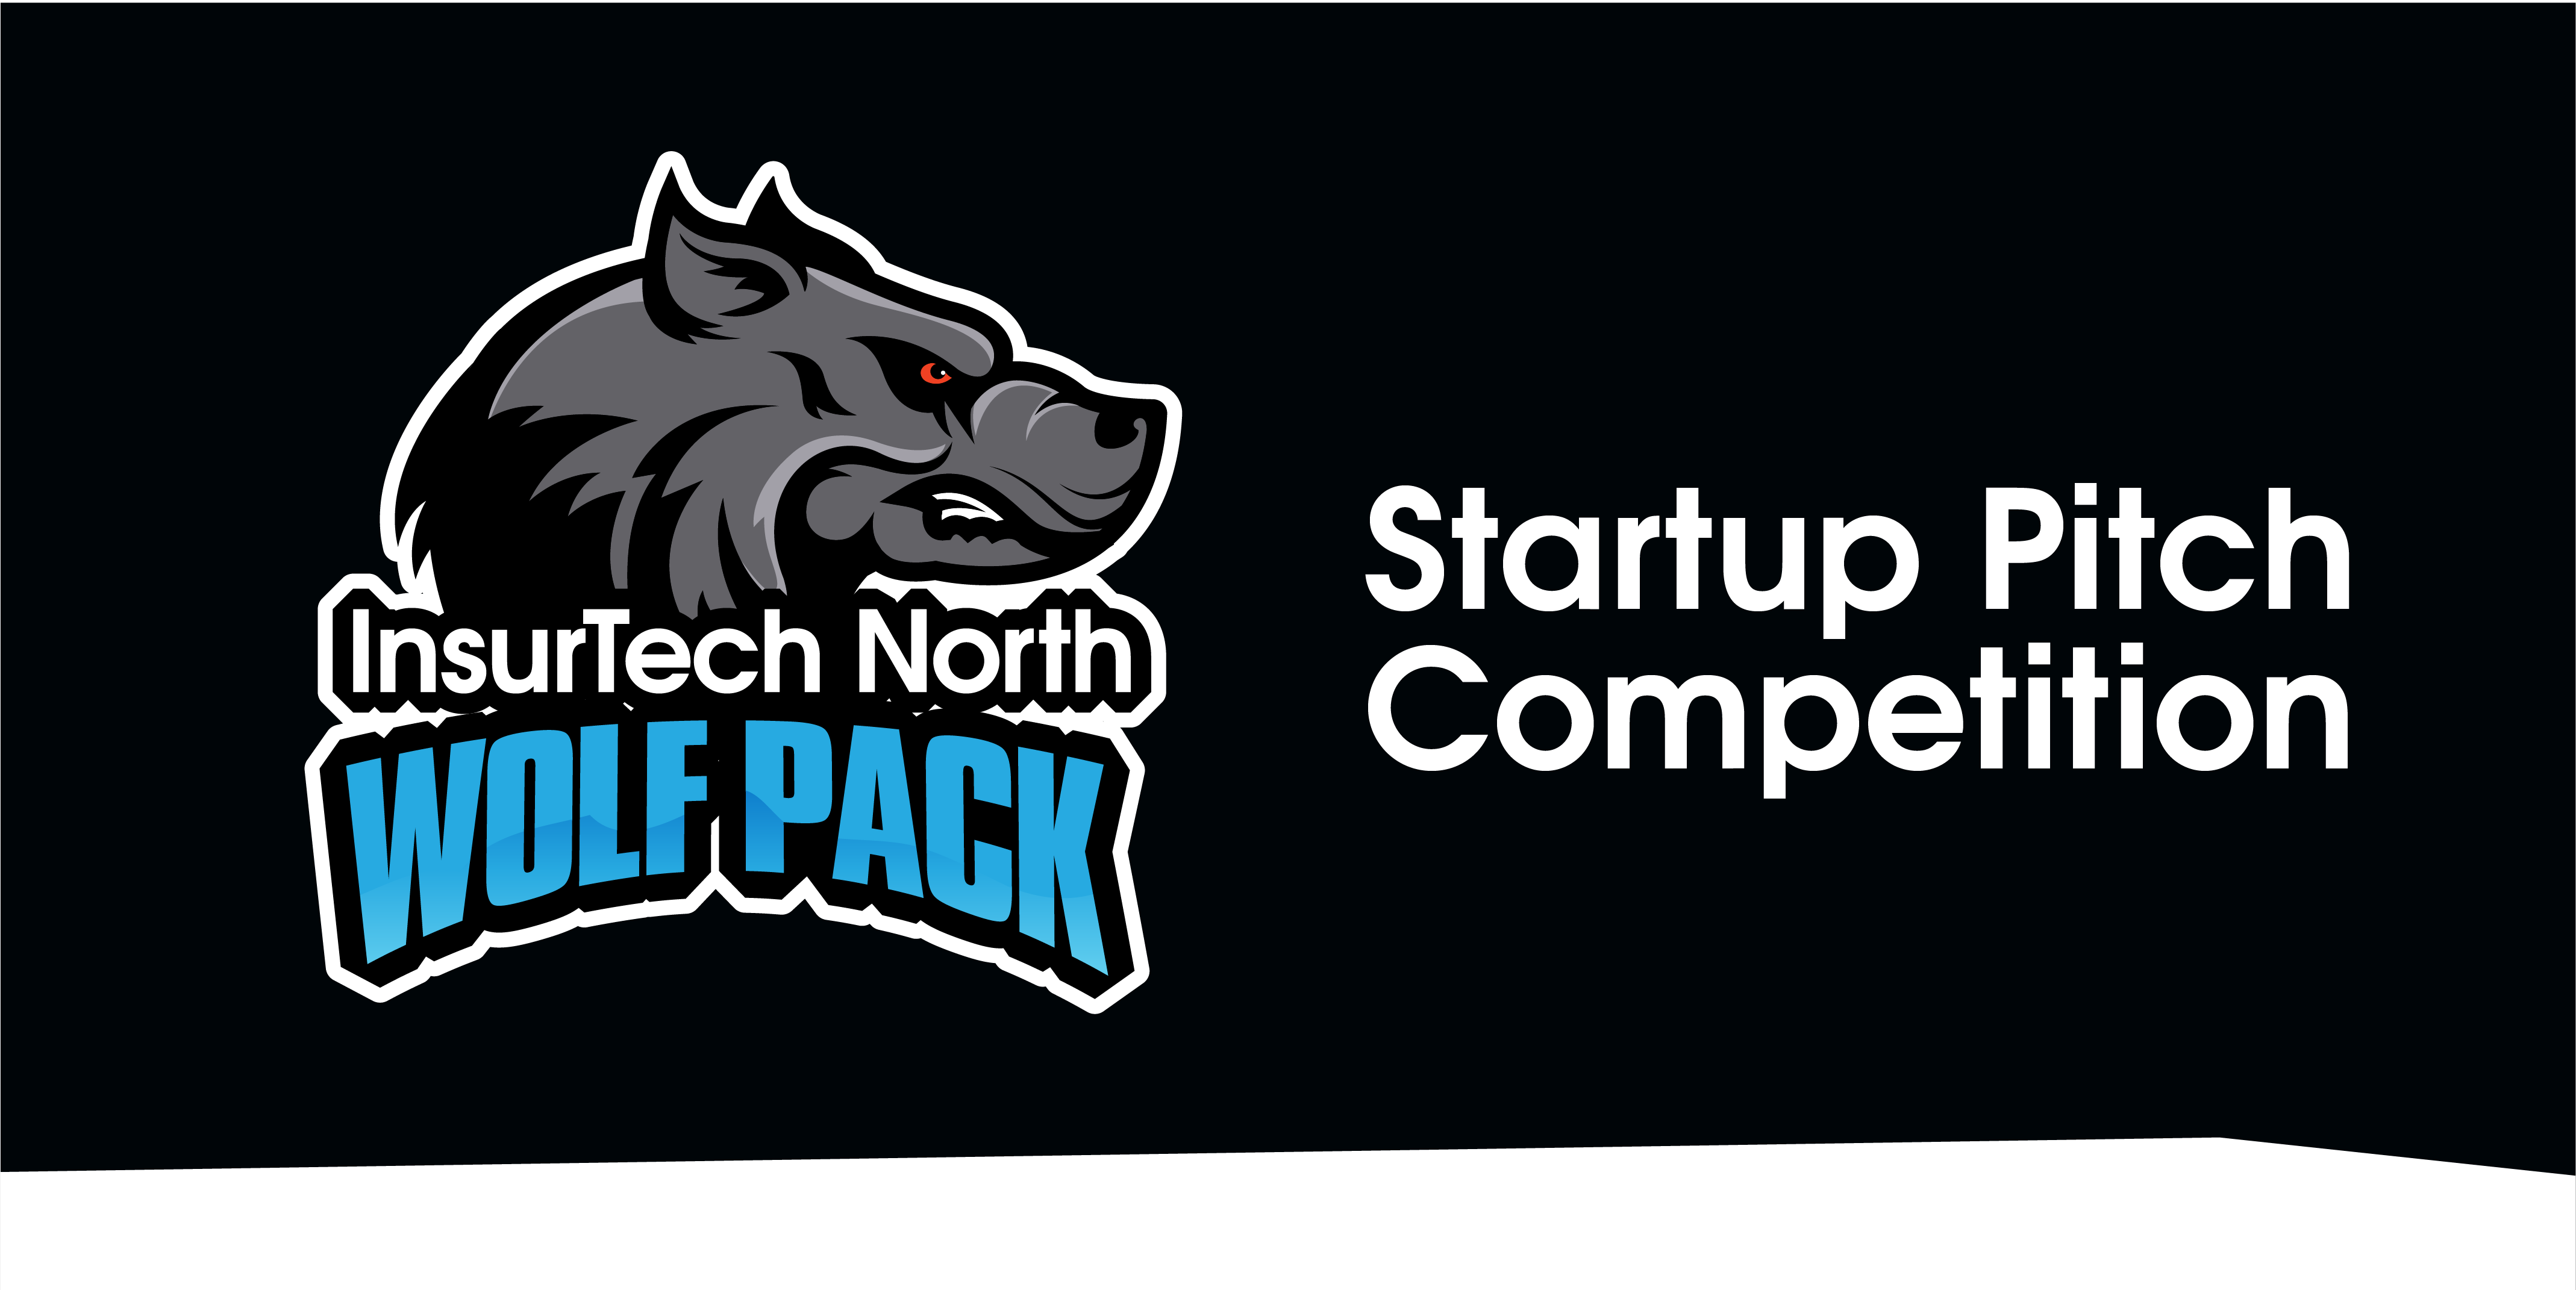 Wolf Pack Startup Pitch Competition - InsurTech North